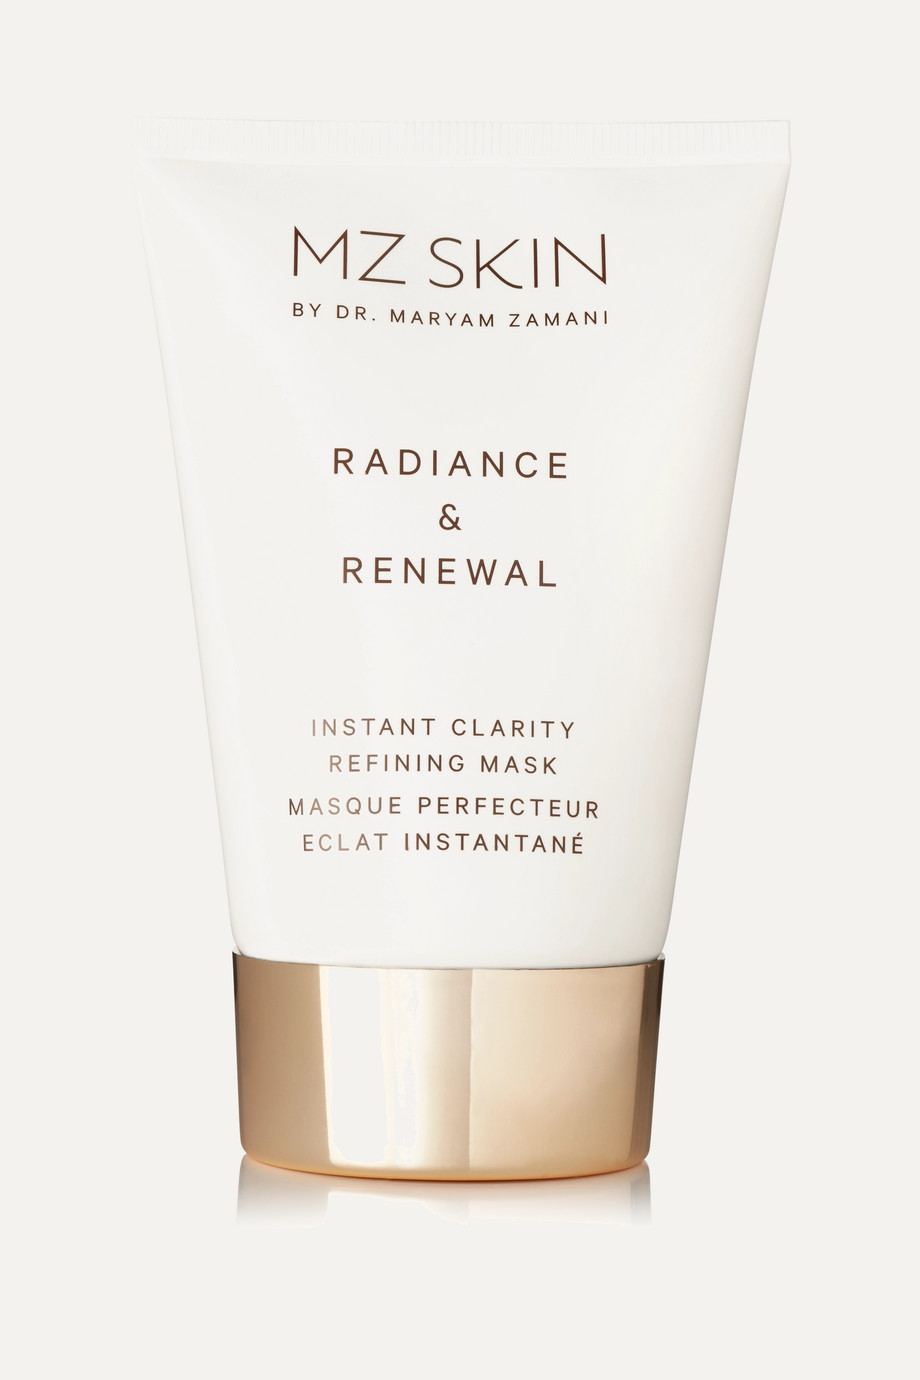 MZ SKIN Radiance & Renewal Instant Clarity Refining Mask, 100ml